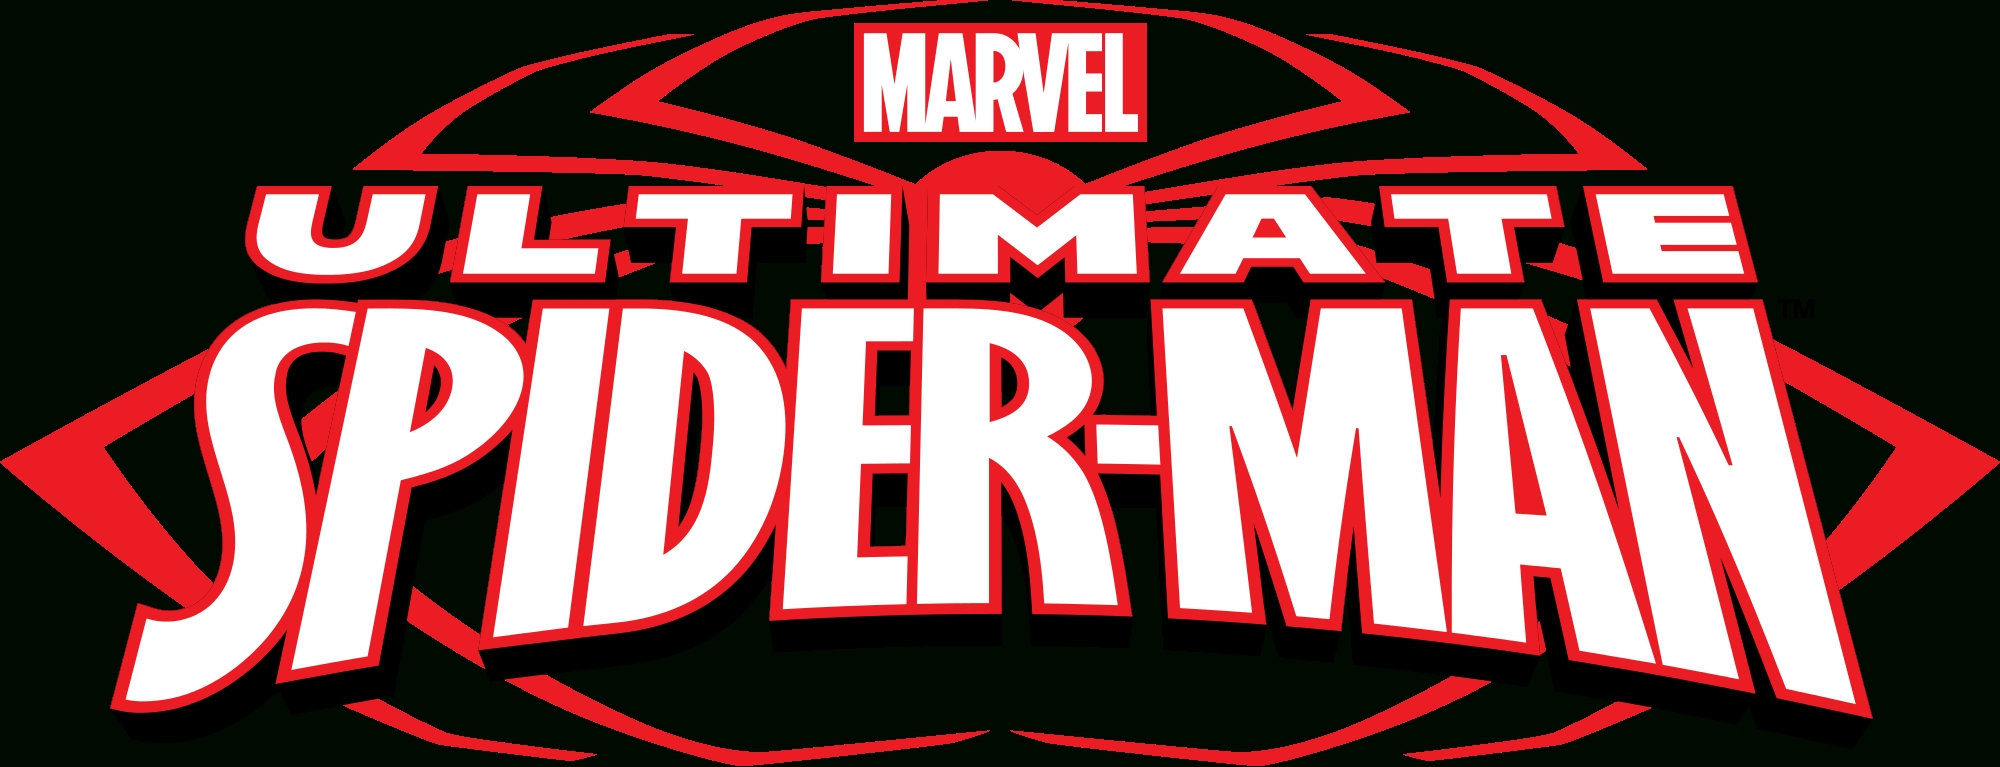 fichier:ultimate spider-man (série d'animation) — wikipédia